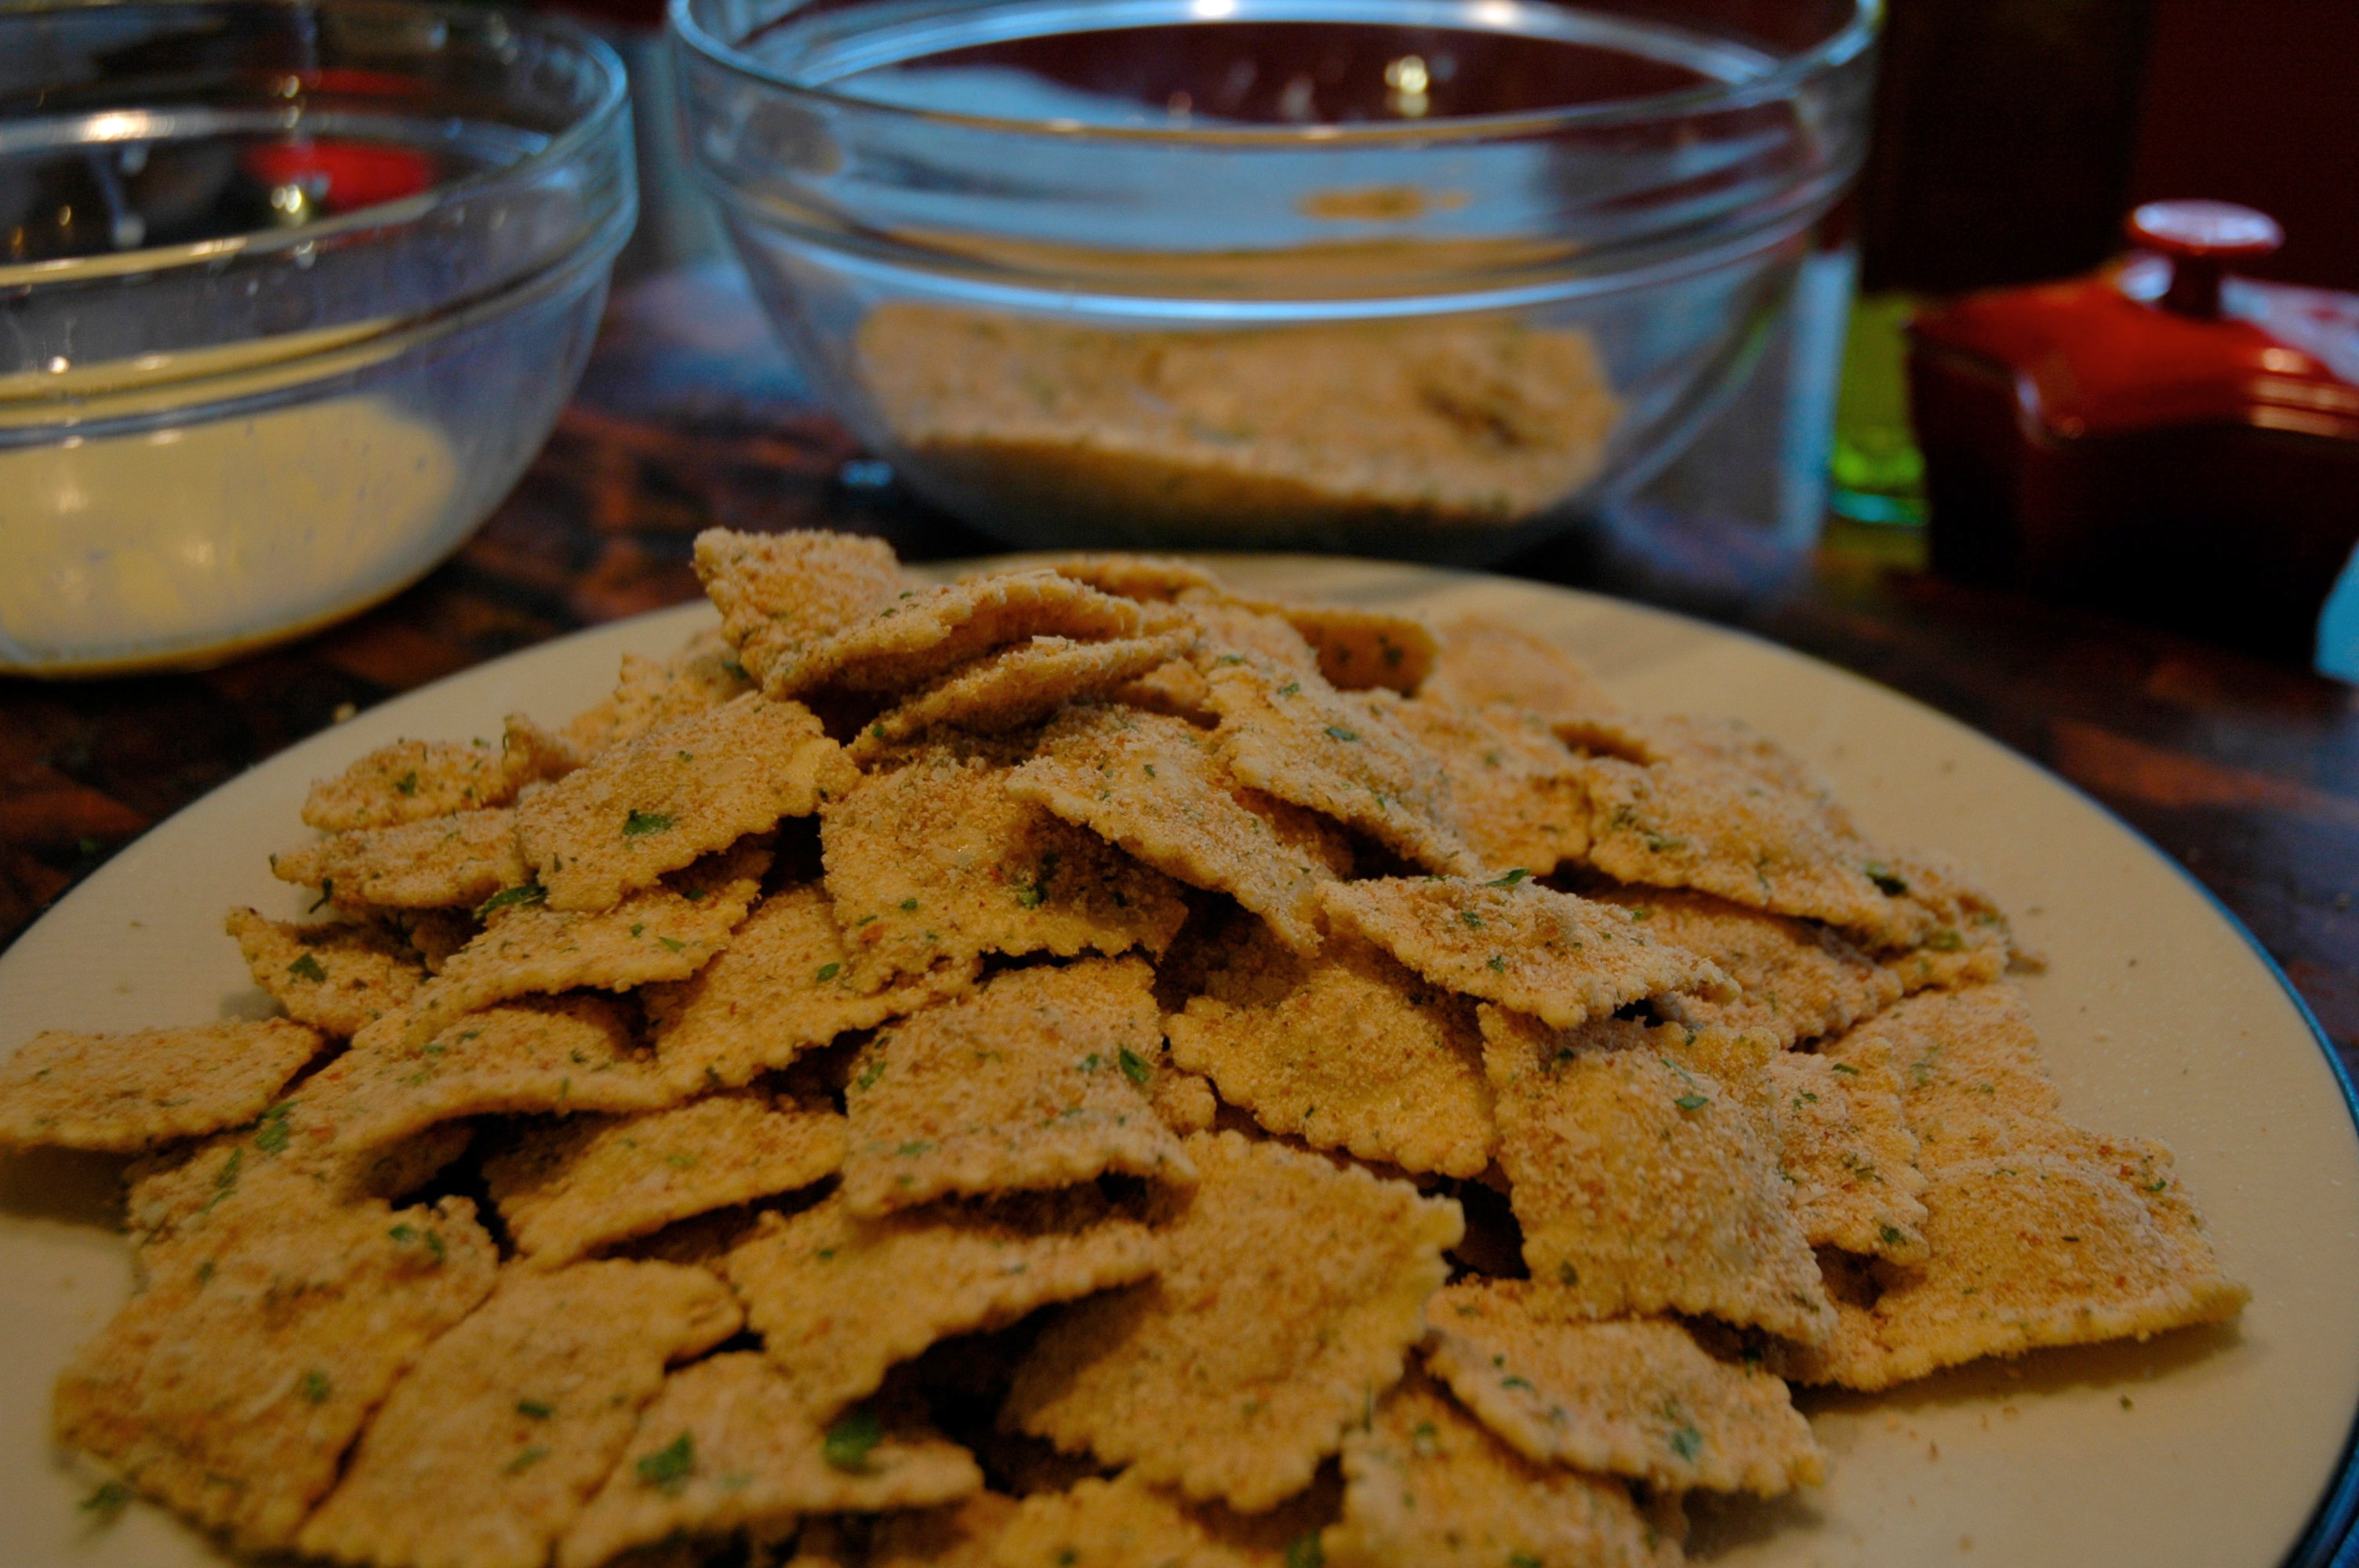 ... Toasted Ravioli with Marinara Dipping Sauce « Sarah's Musical Kitchen